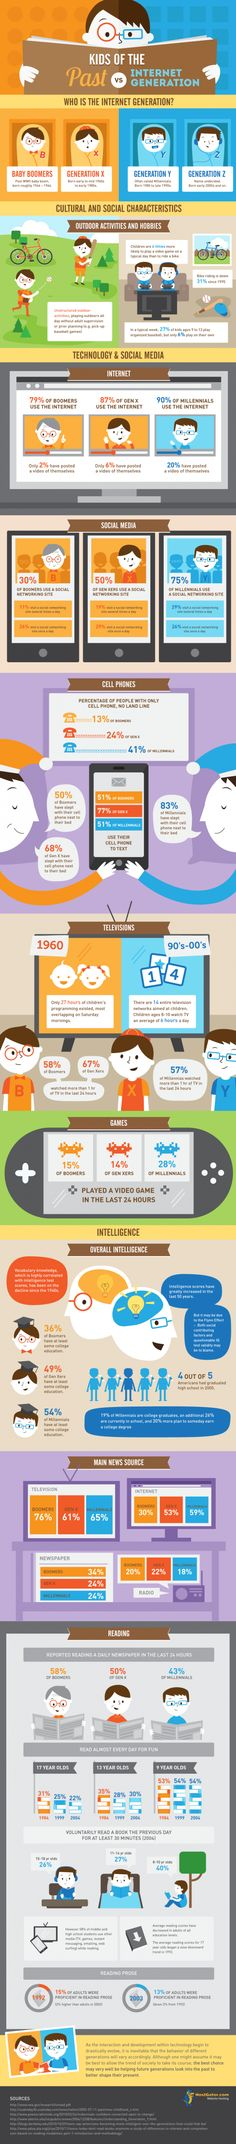 Kids of The Past vs. Kids of The Internet Generation Infographic